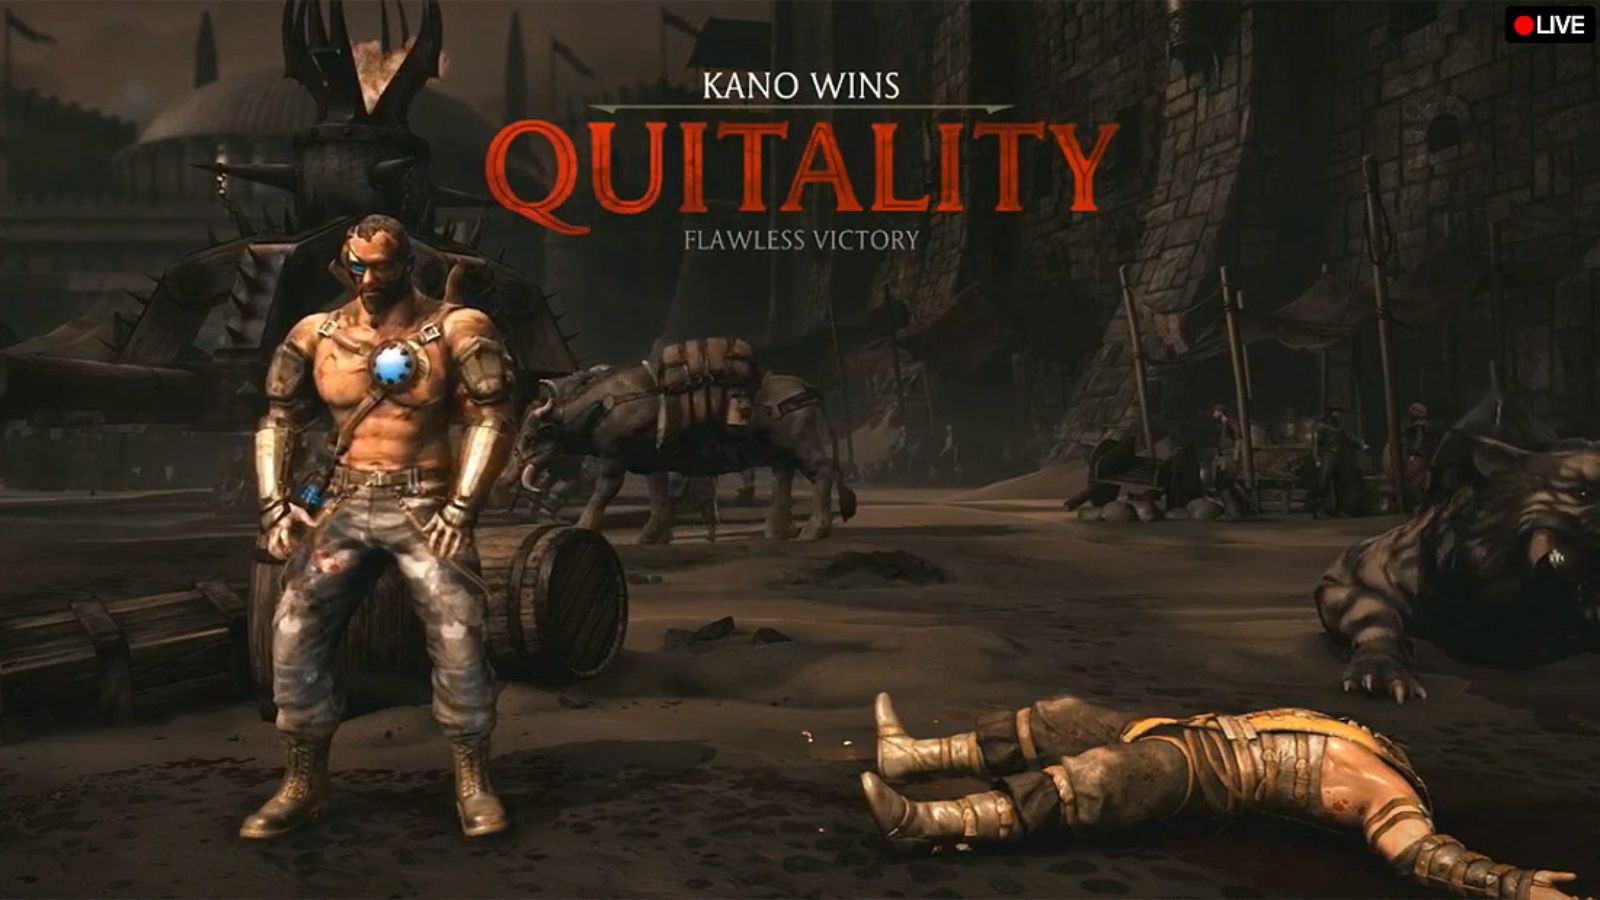 Mortal Kombat X New Head Exploding Quitality Predator Joining